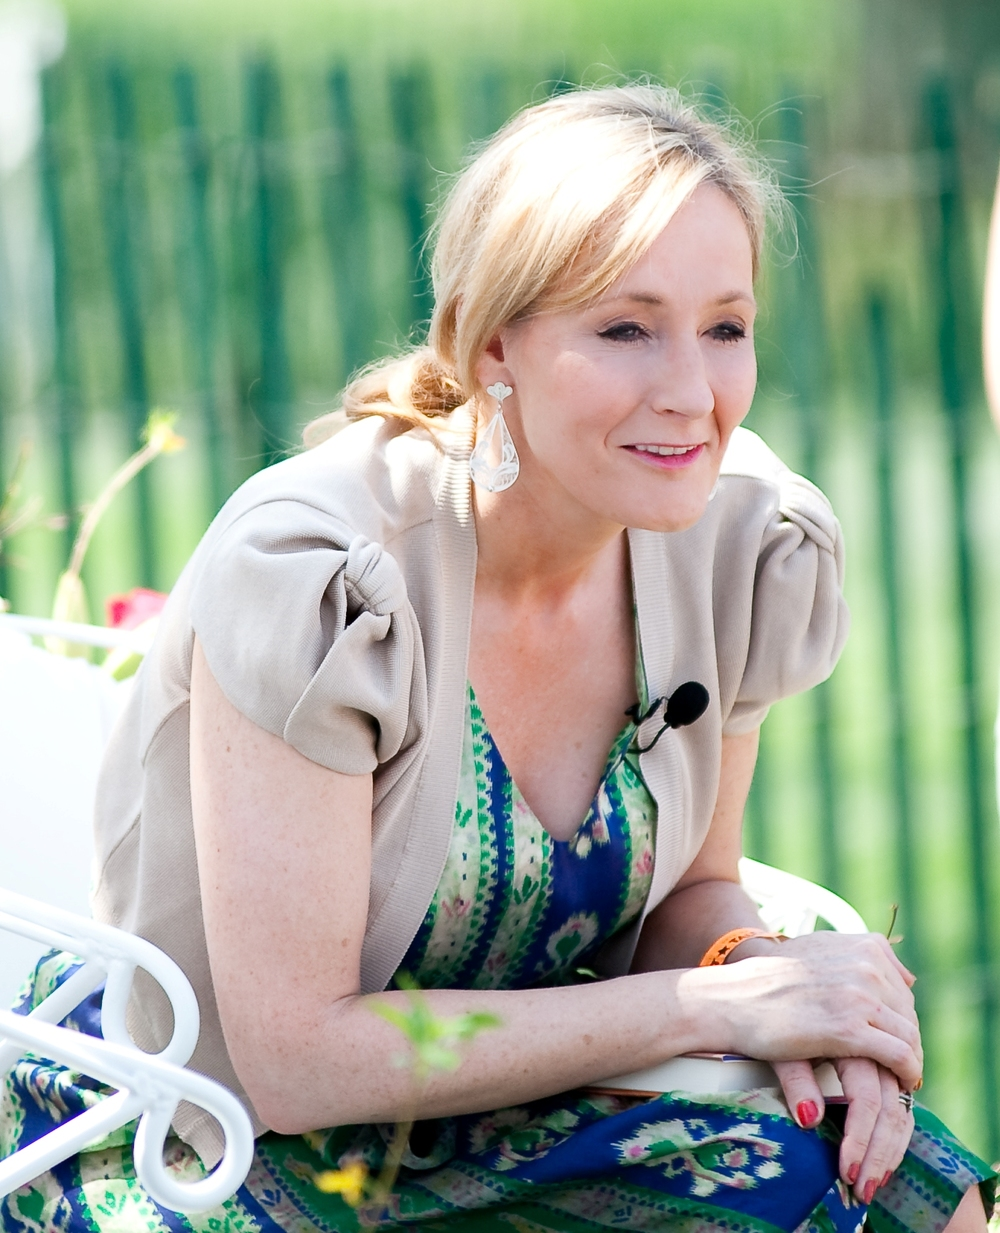 J.K. Rowling (Source: Wikipedia)